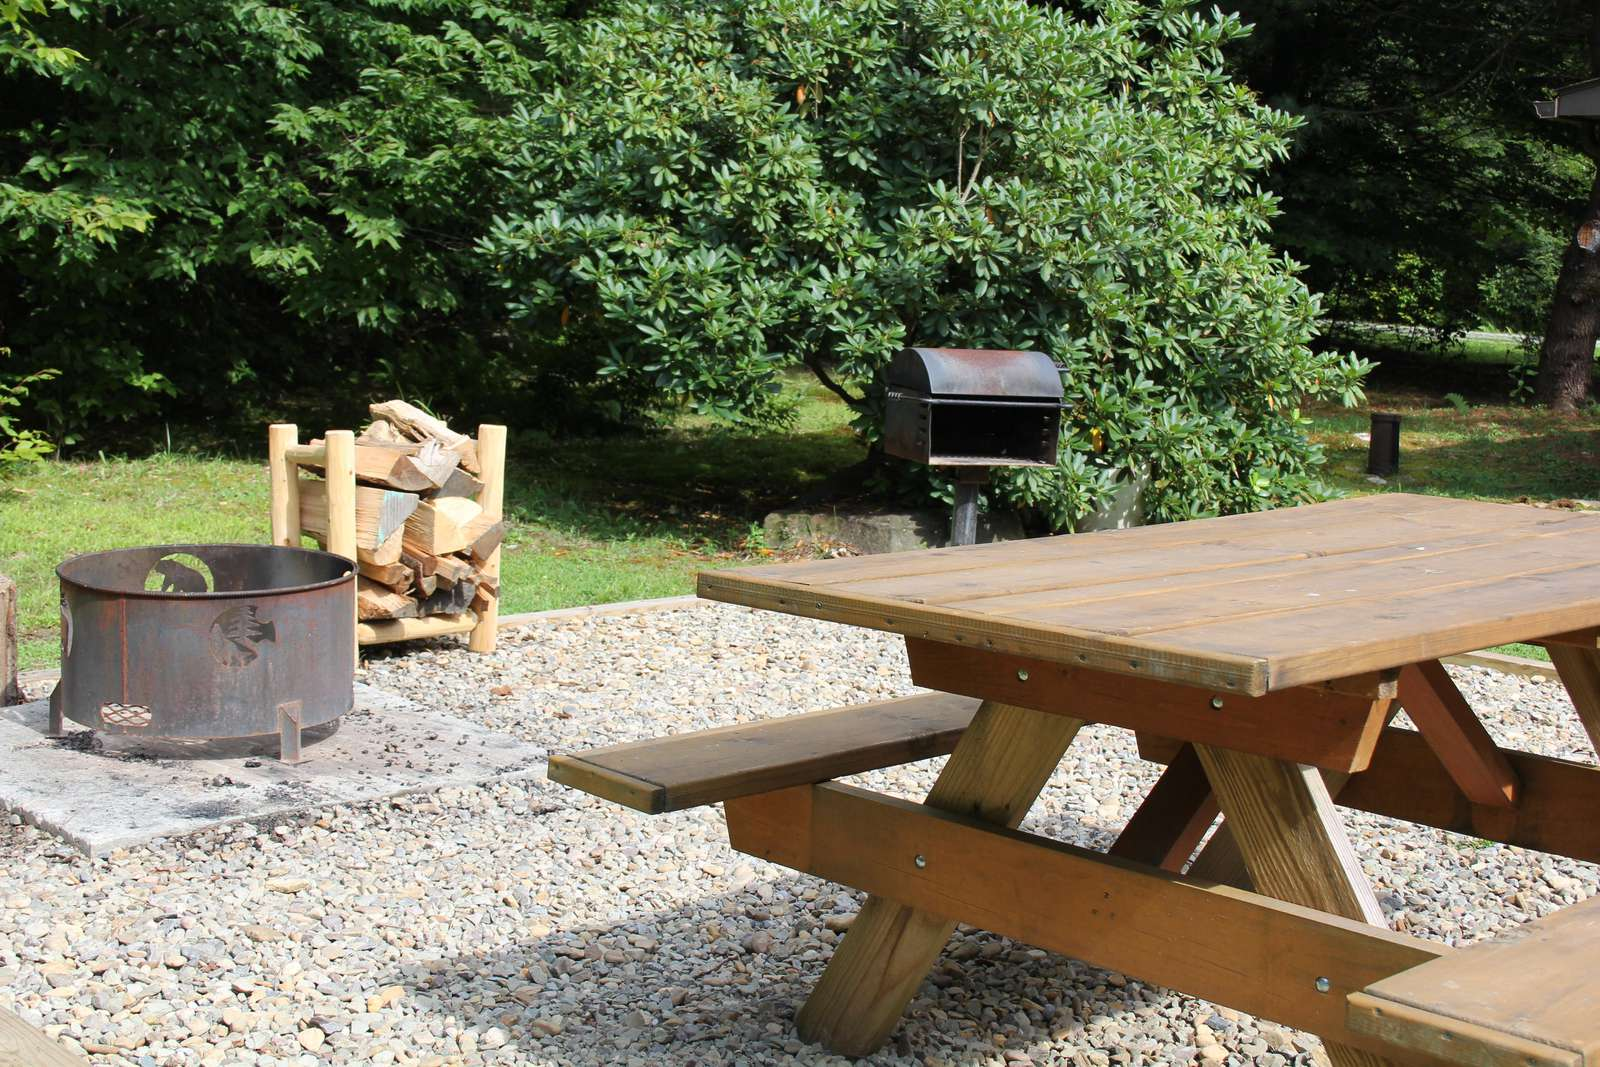 Picnic Table, Charcoal Grill, Firepit